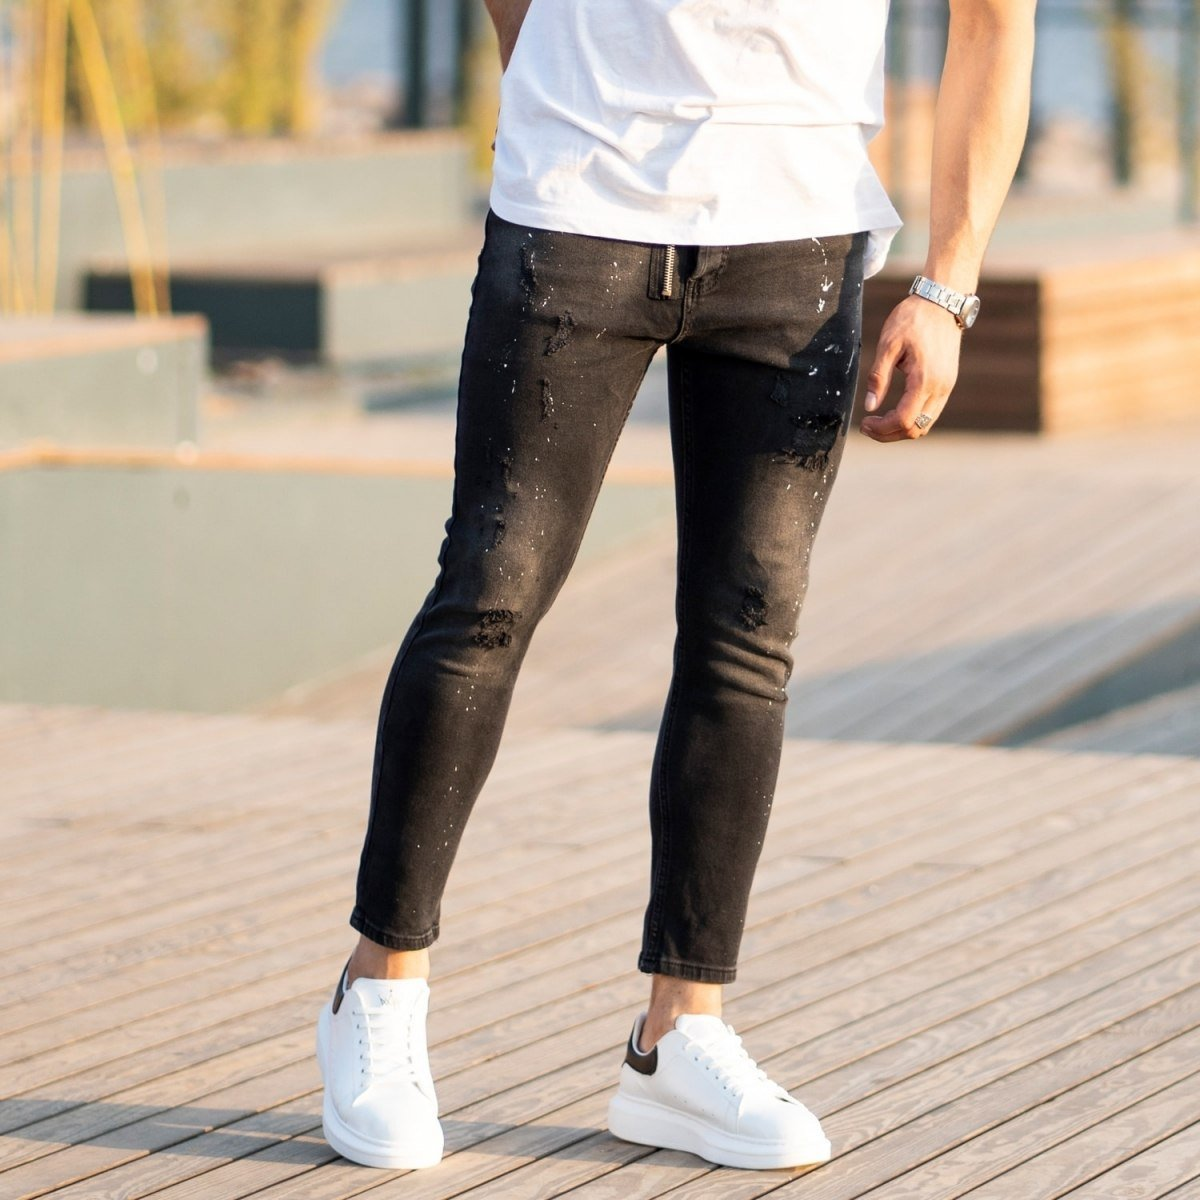 Men's Futuristic details Jeans In Black